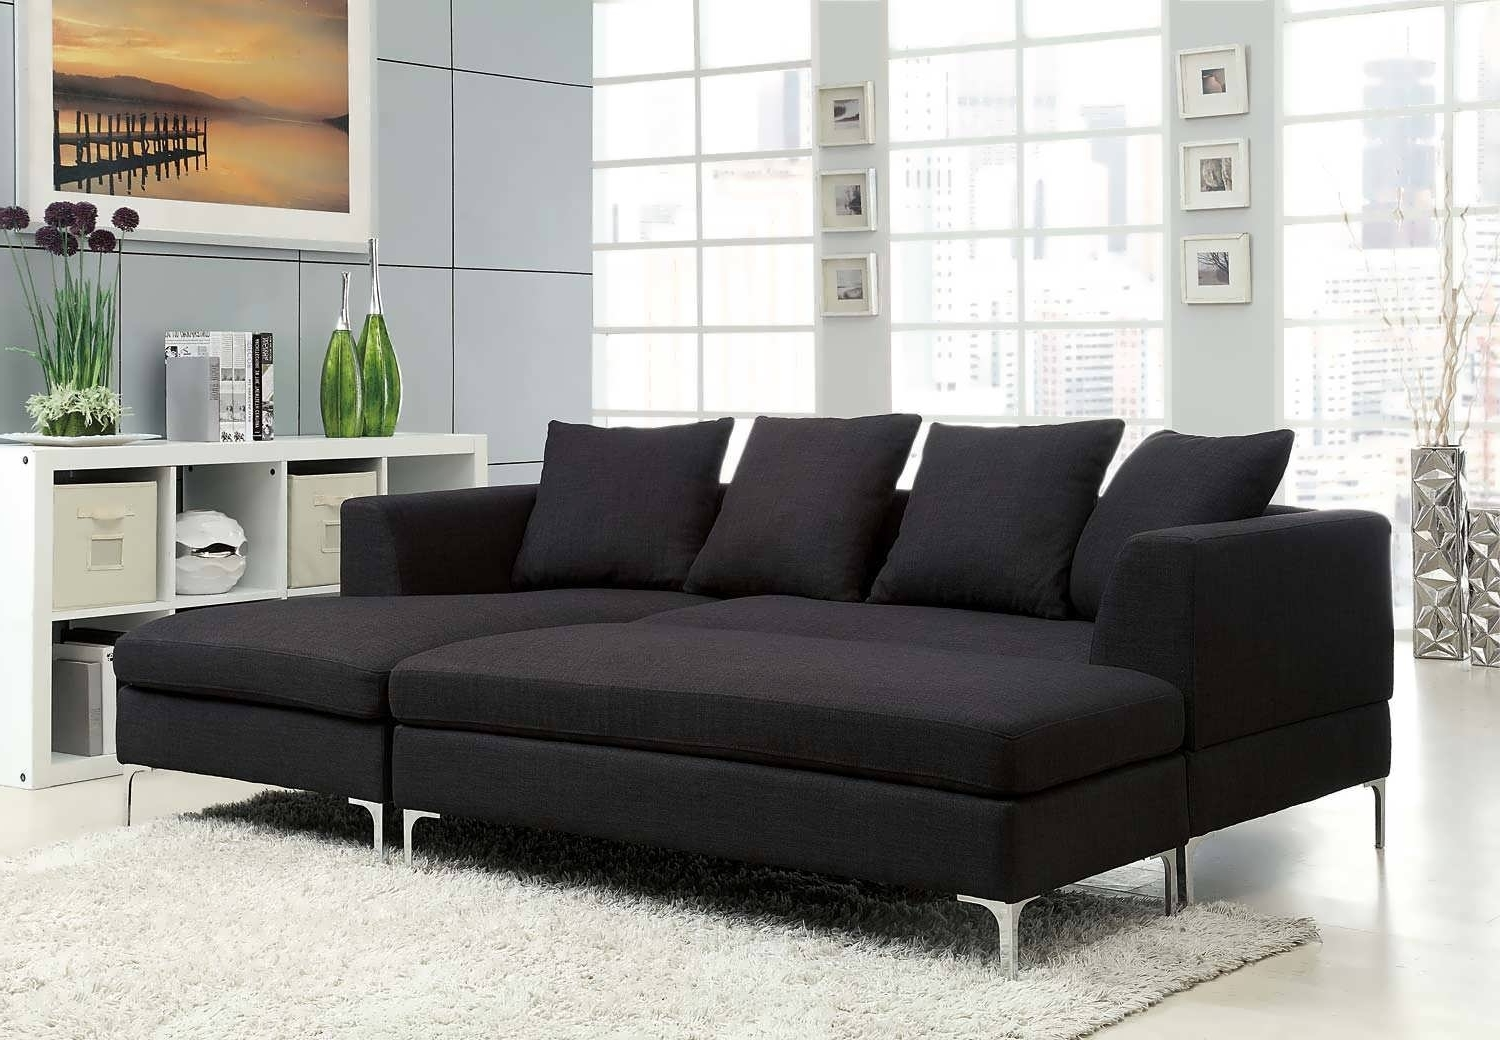 Sofa : Sectional Navy Blue Sectional Grey Leather Sectional Grey In Popular Chaise Sofa Sectionals (View 4 of 15)